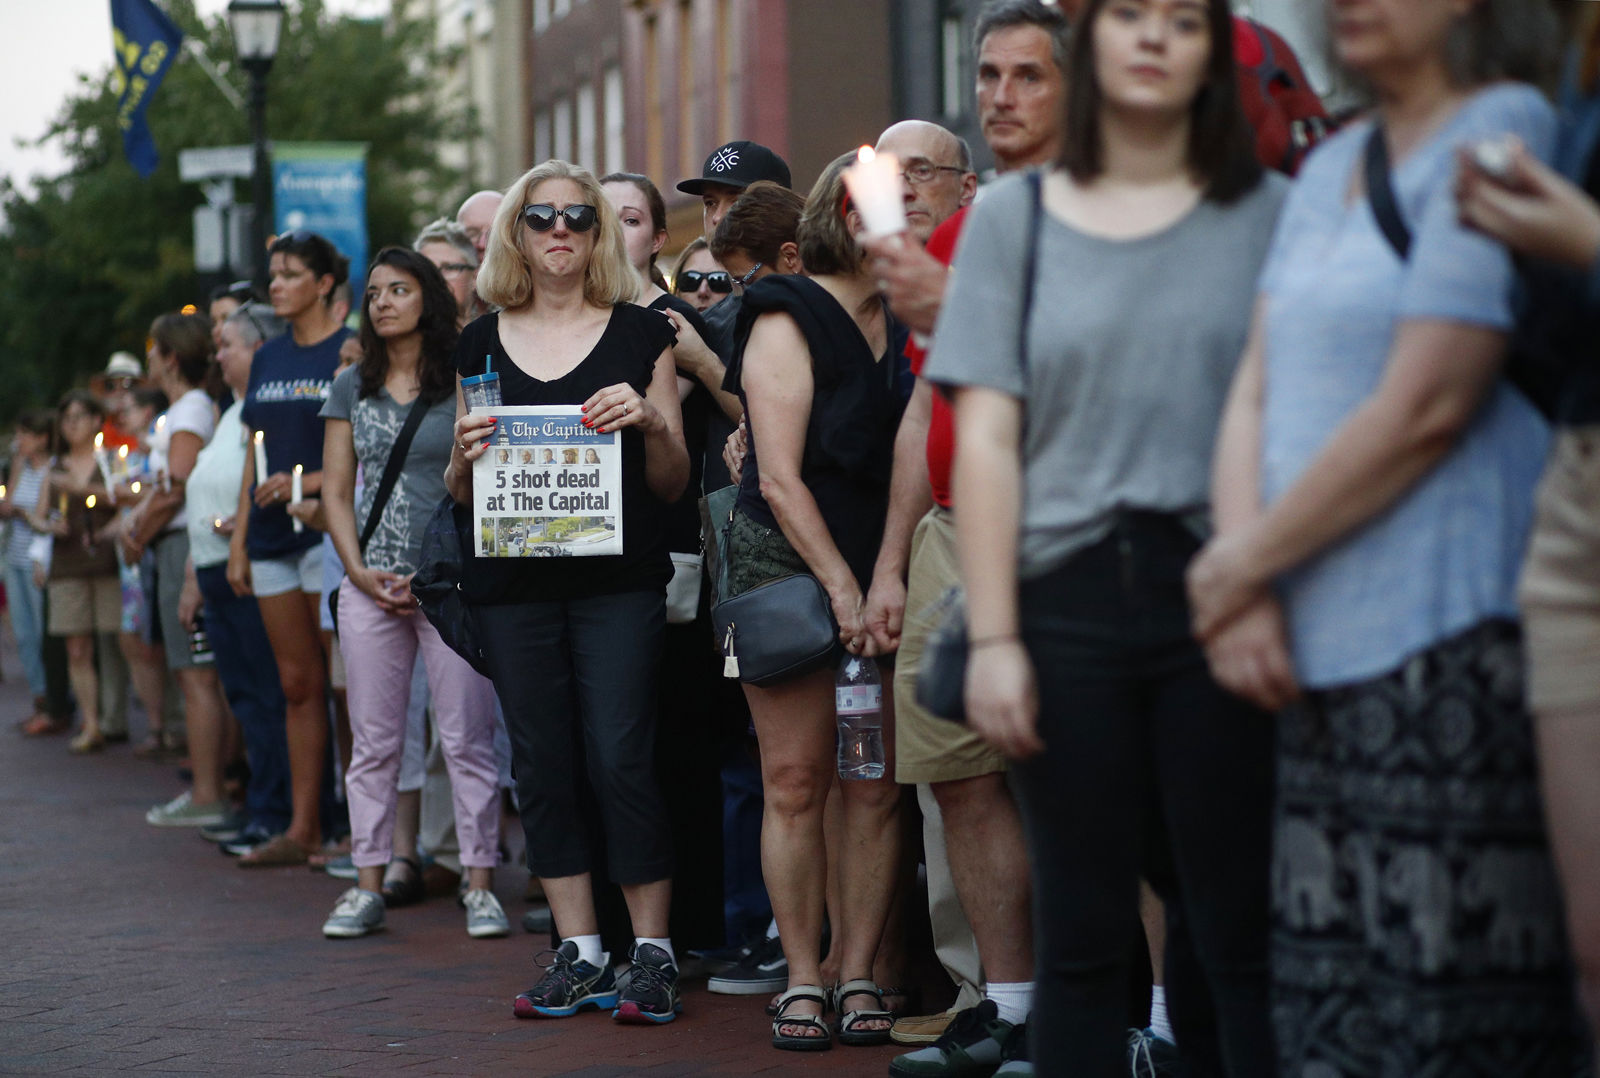 People stand in silence during a vigil in response to a shooting in the Capital Gazette newsroom Friday, June 29, 2018, in Annapolis, Md. Prosecutors say Jarrod W. Ramos opened fire Thursday in the newsroom. (AP Photo/Patrick Semansky)